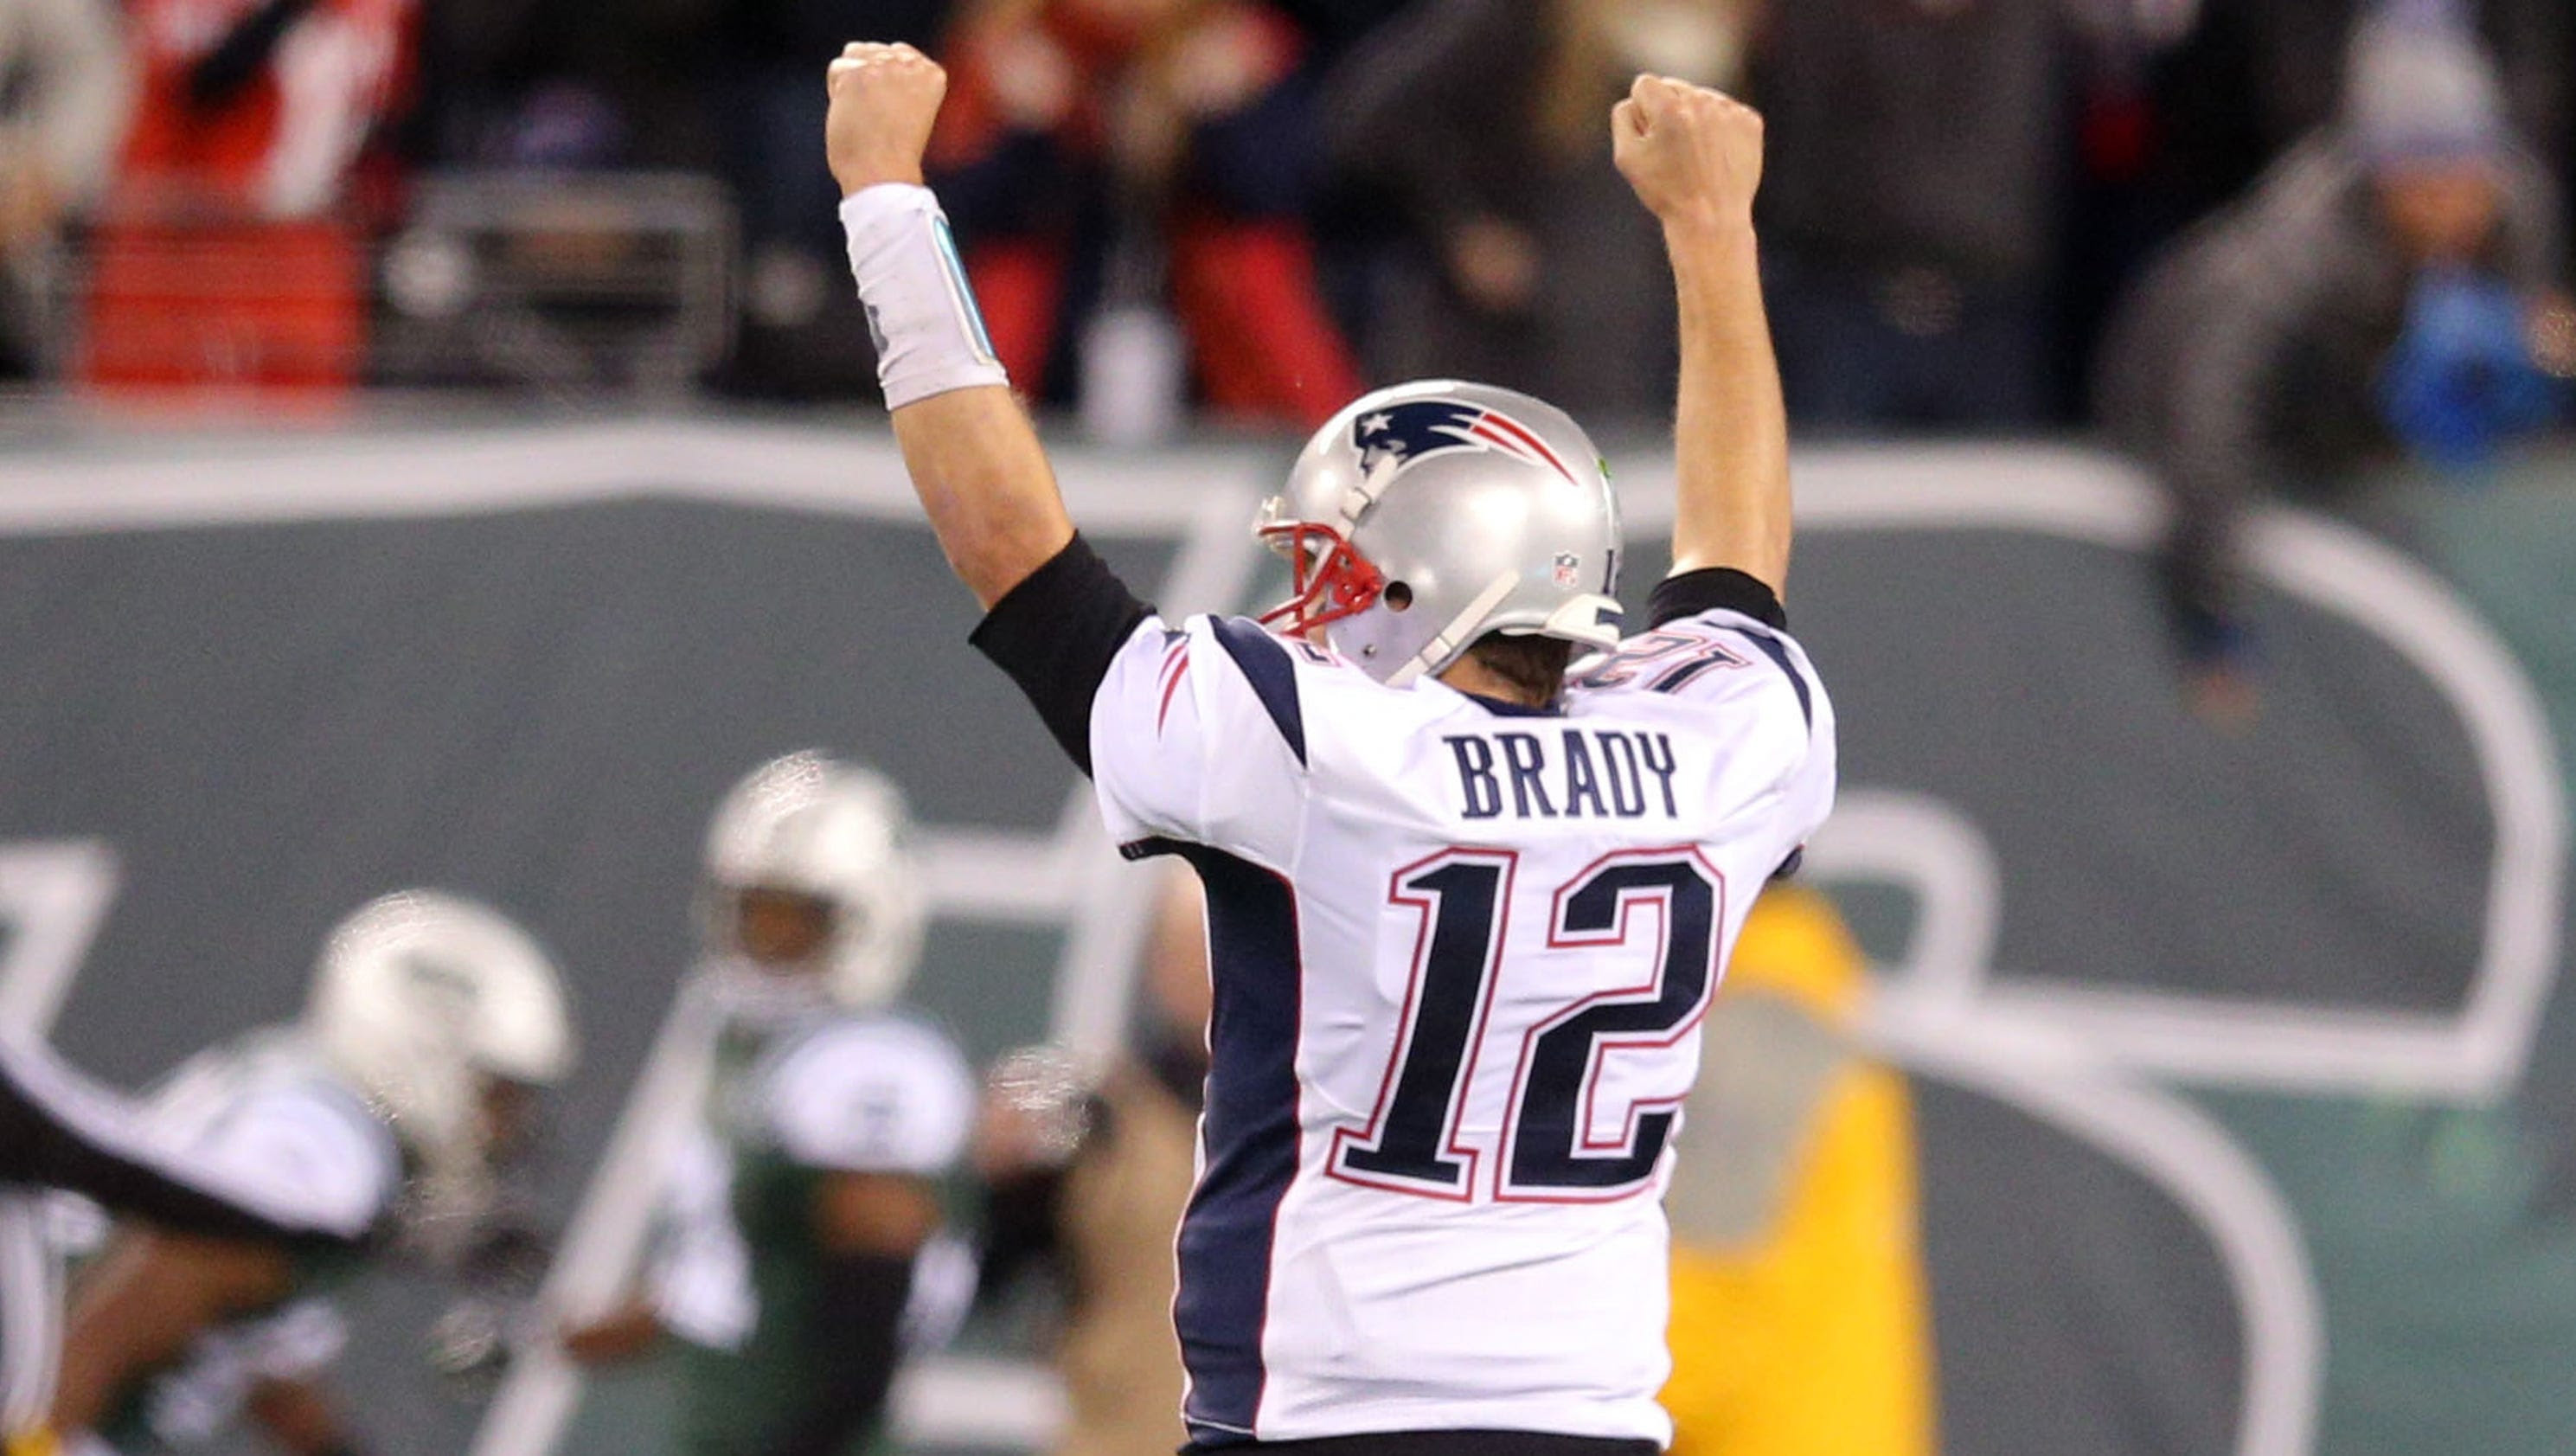 Tom Brady revels in recordtying 200th win with Patriots